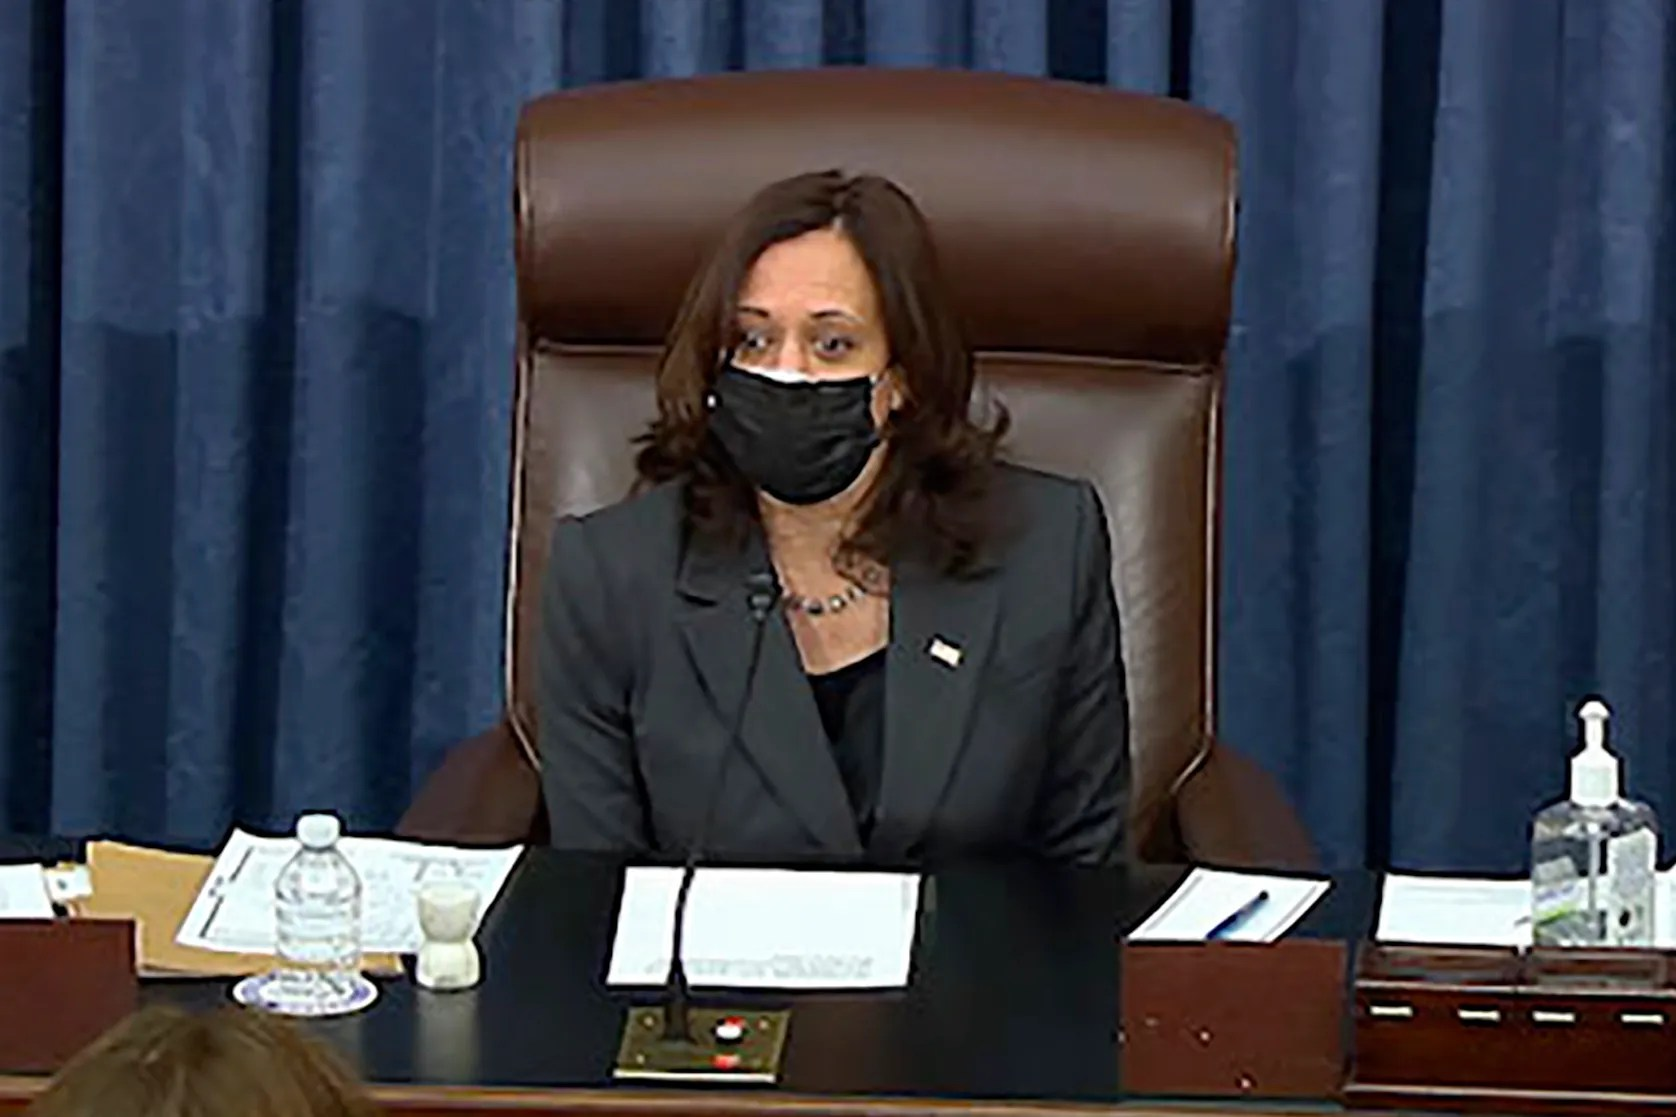 Vice President Kamala Harris sits in the chair on the Senate floor to cast the tie-breaking vote, her first, Friday, Feb. 5, 2021 at the Capitol in Washington. The Senate early Friday approved a budget resolution that paves the way for fast-track passage of President Joe Biden's $1.9 trillion coronavirus relief plan without support from Republicans.